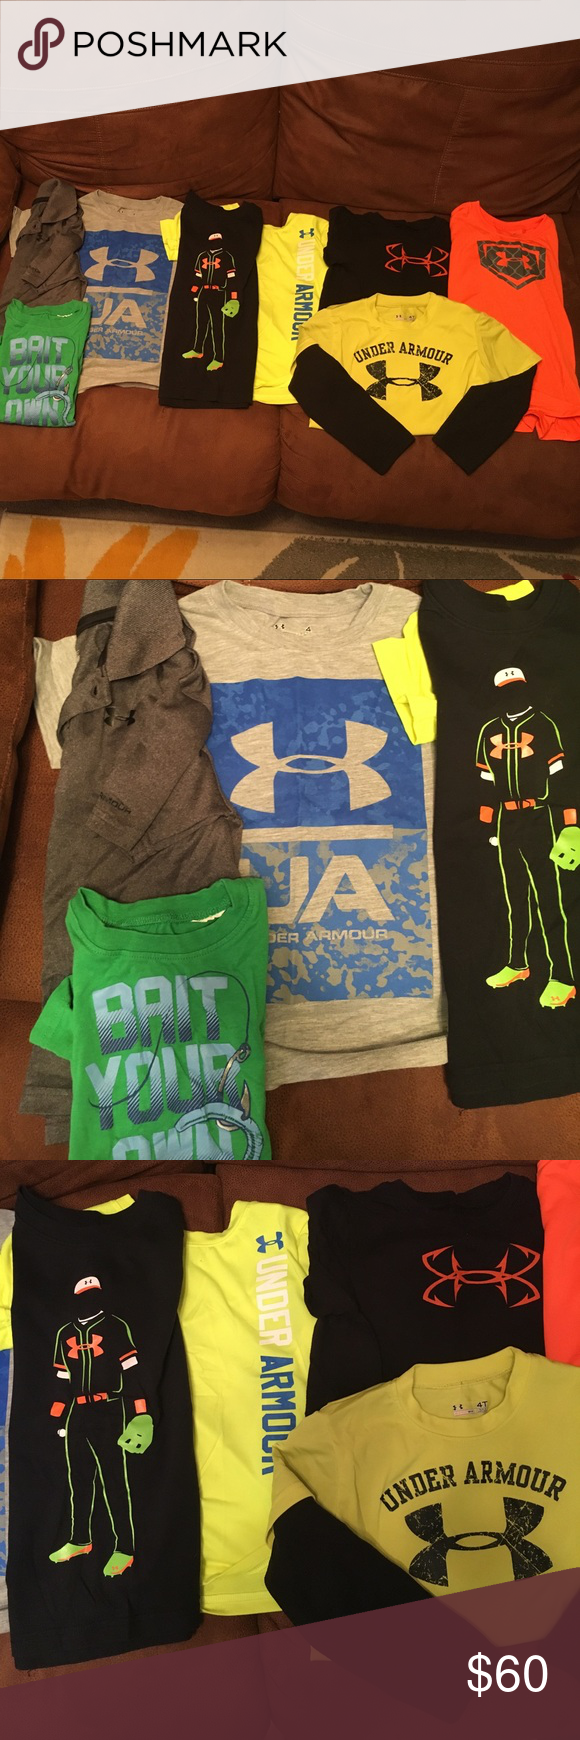 Boys Under Armour shirts Eight boys Under Armour shirts. Most are in excellent condition and the others would make good play clothes. All size 4 and 4t. Under Armour Shirts & Tops Tees - Short Sleeve